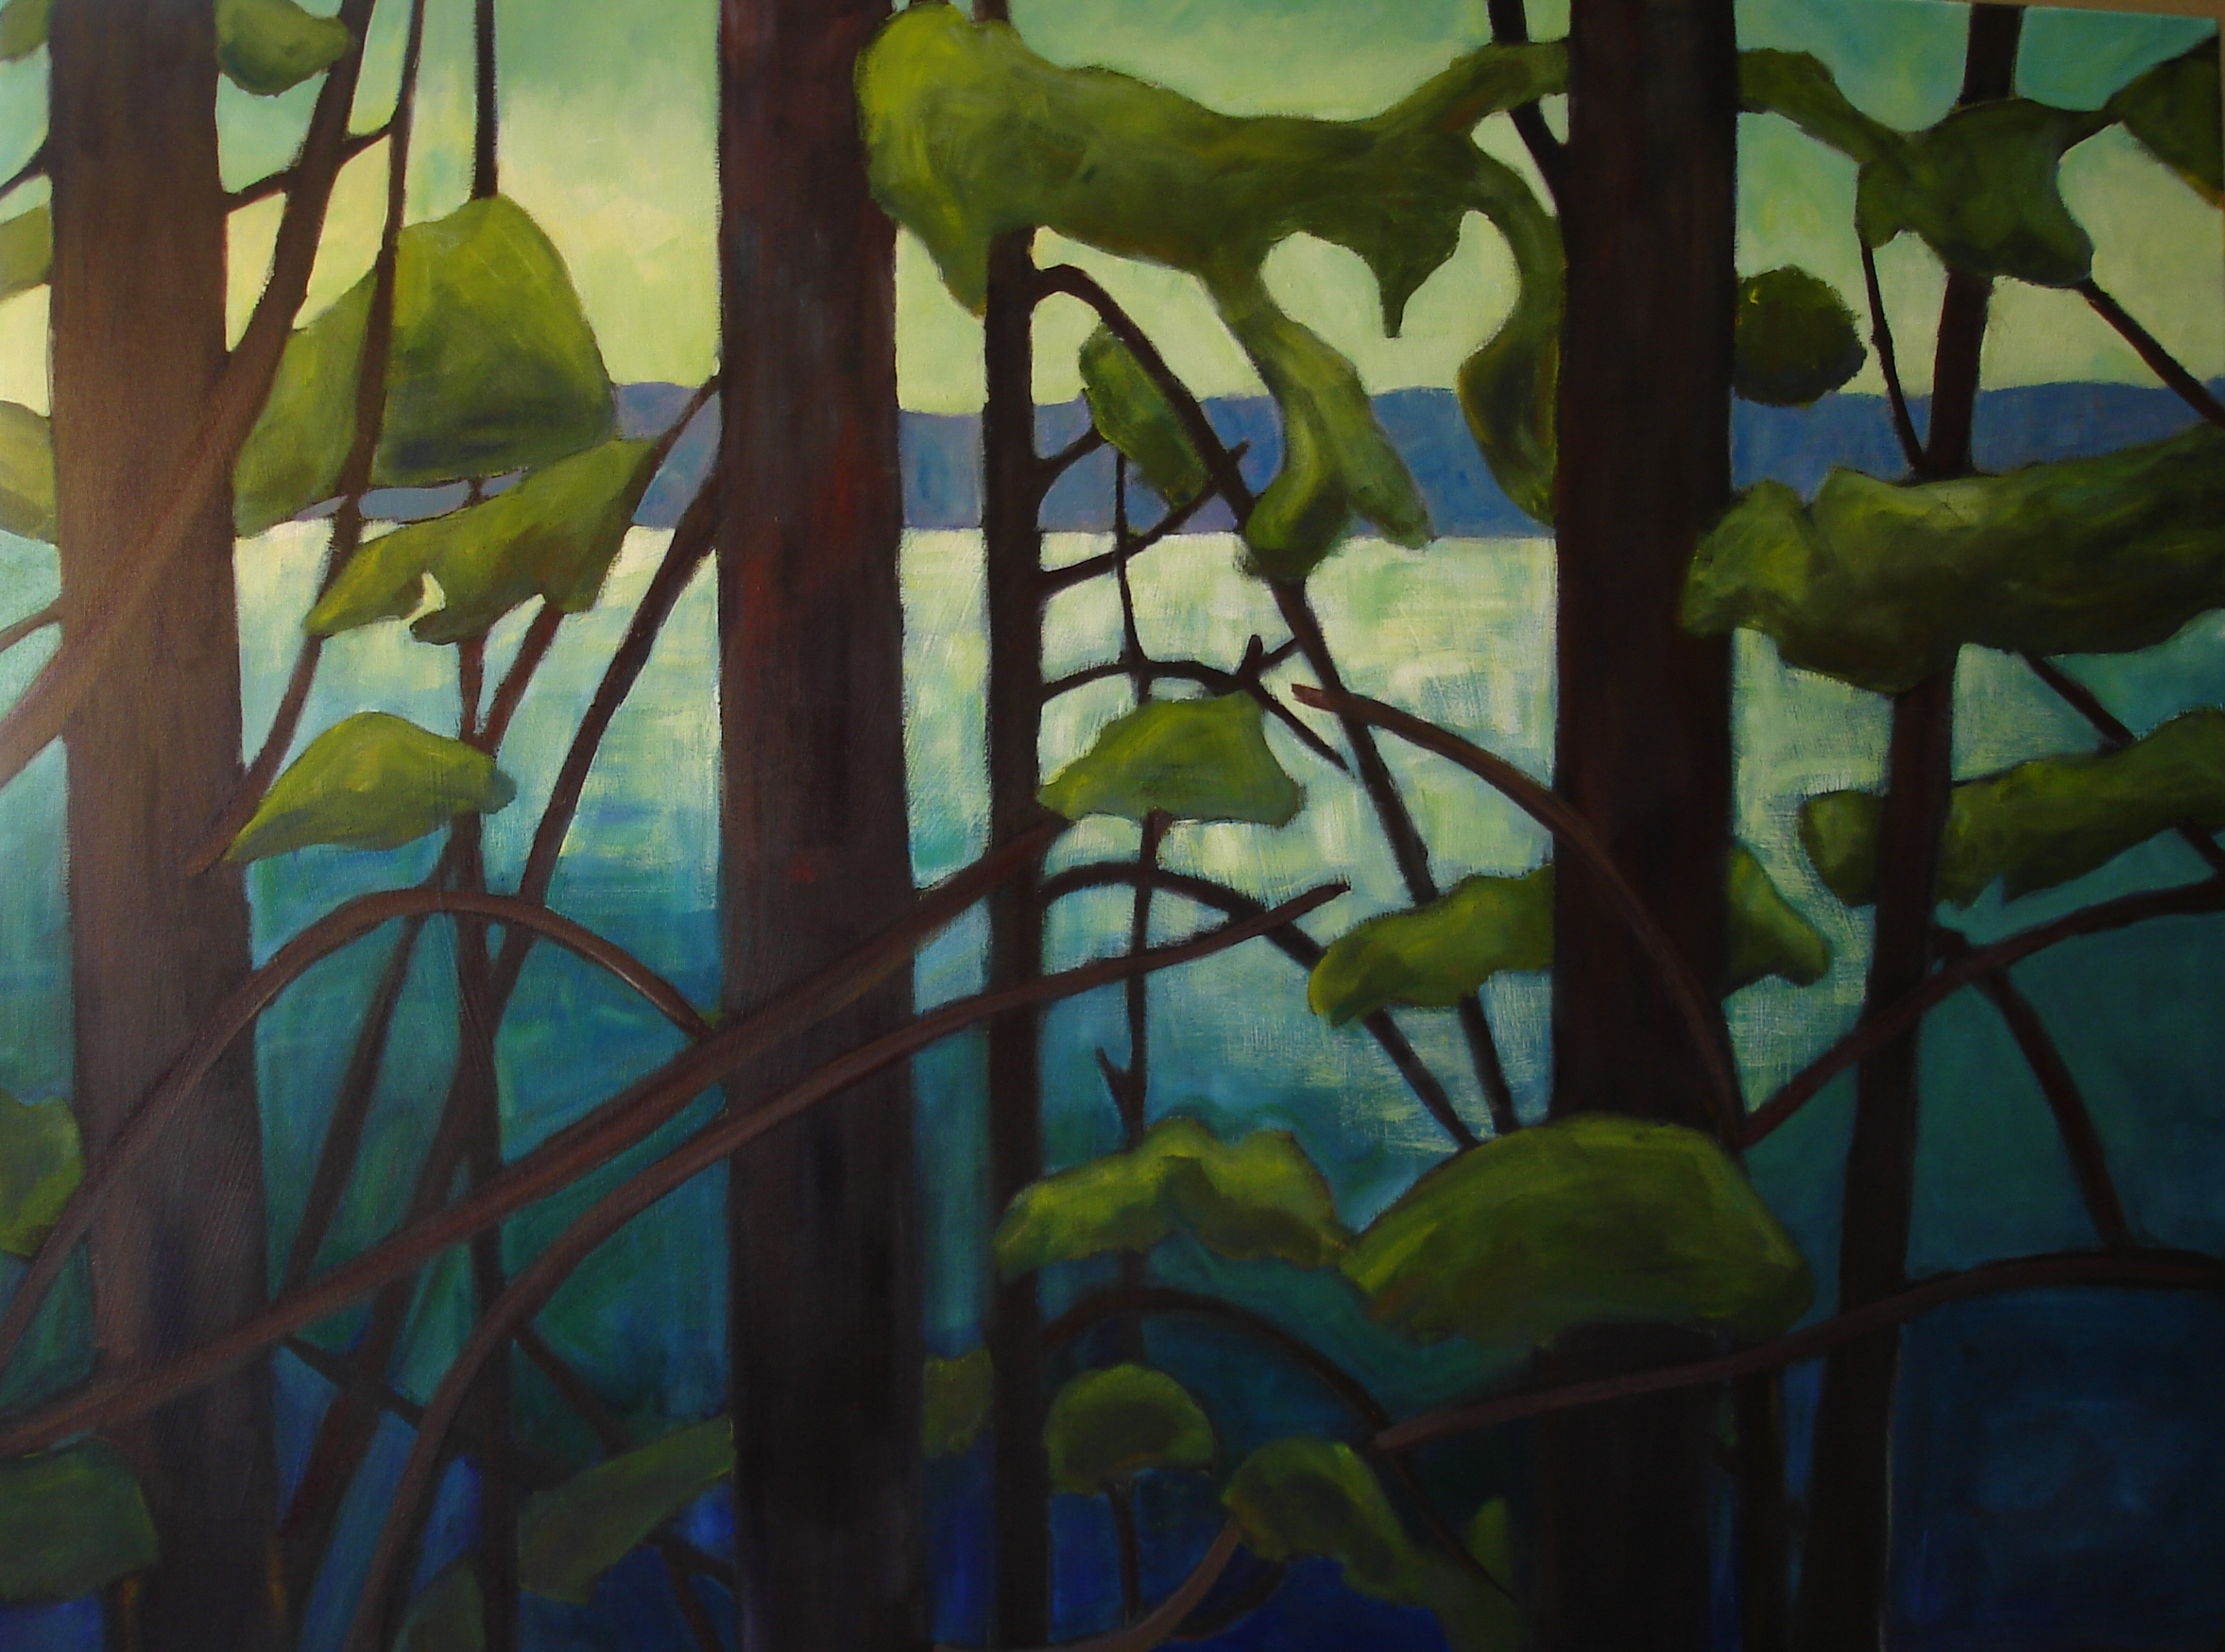 Edge of the Rainforest 30x40 in.